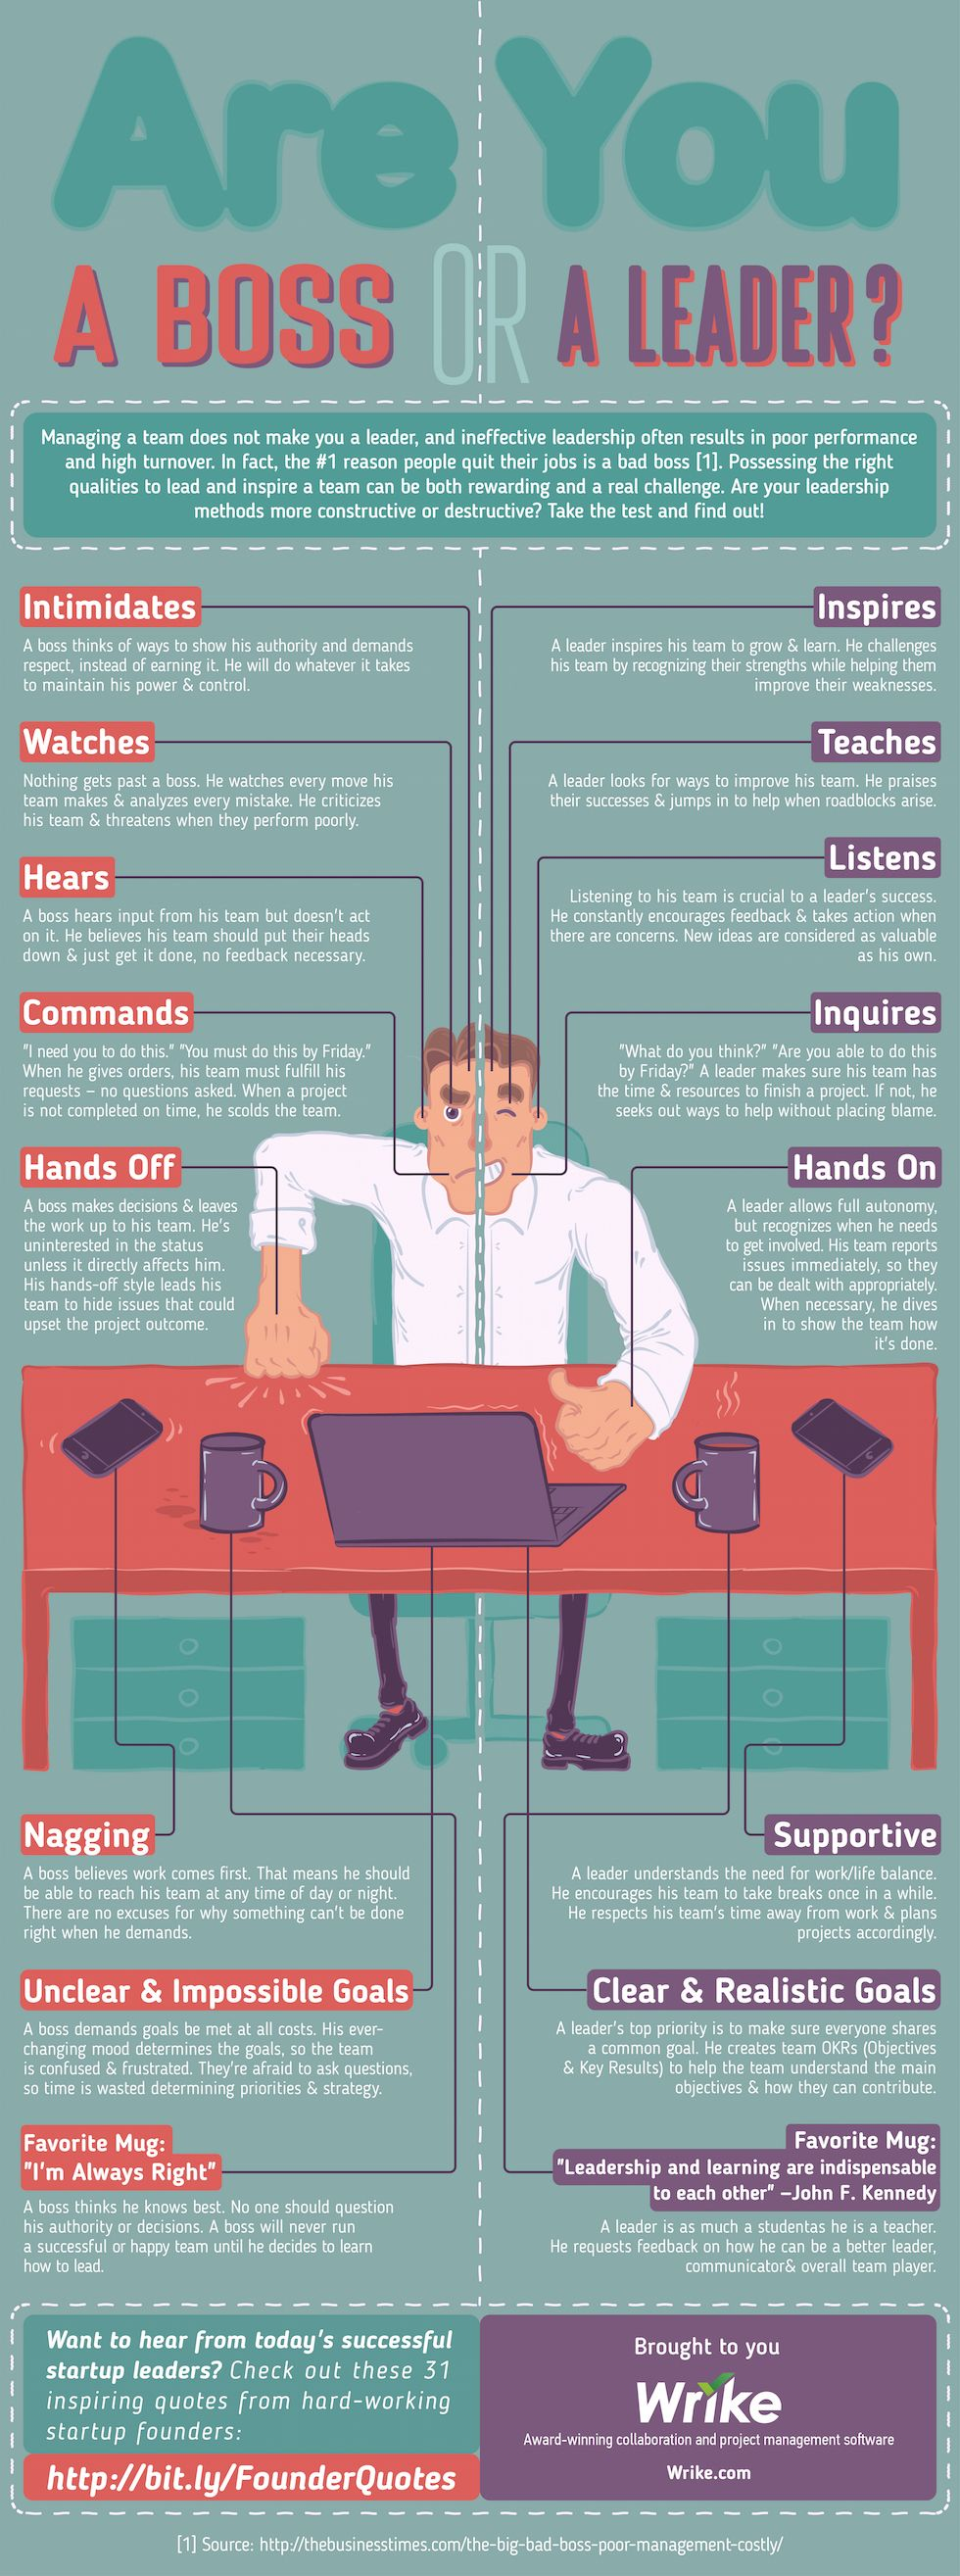 are you a boss or a leader infographic to tell anatomy and infographic boss vs leader something i believe in and have experienced firsthand